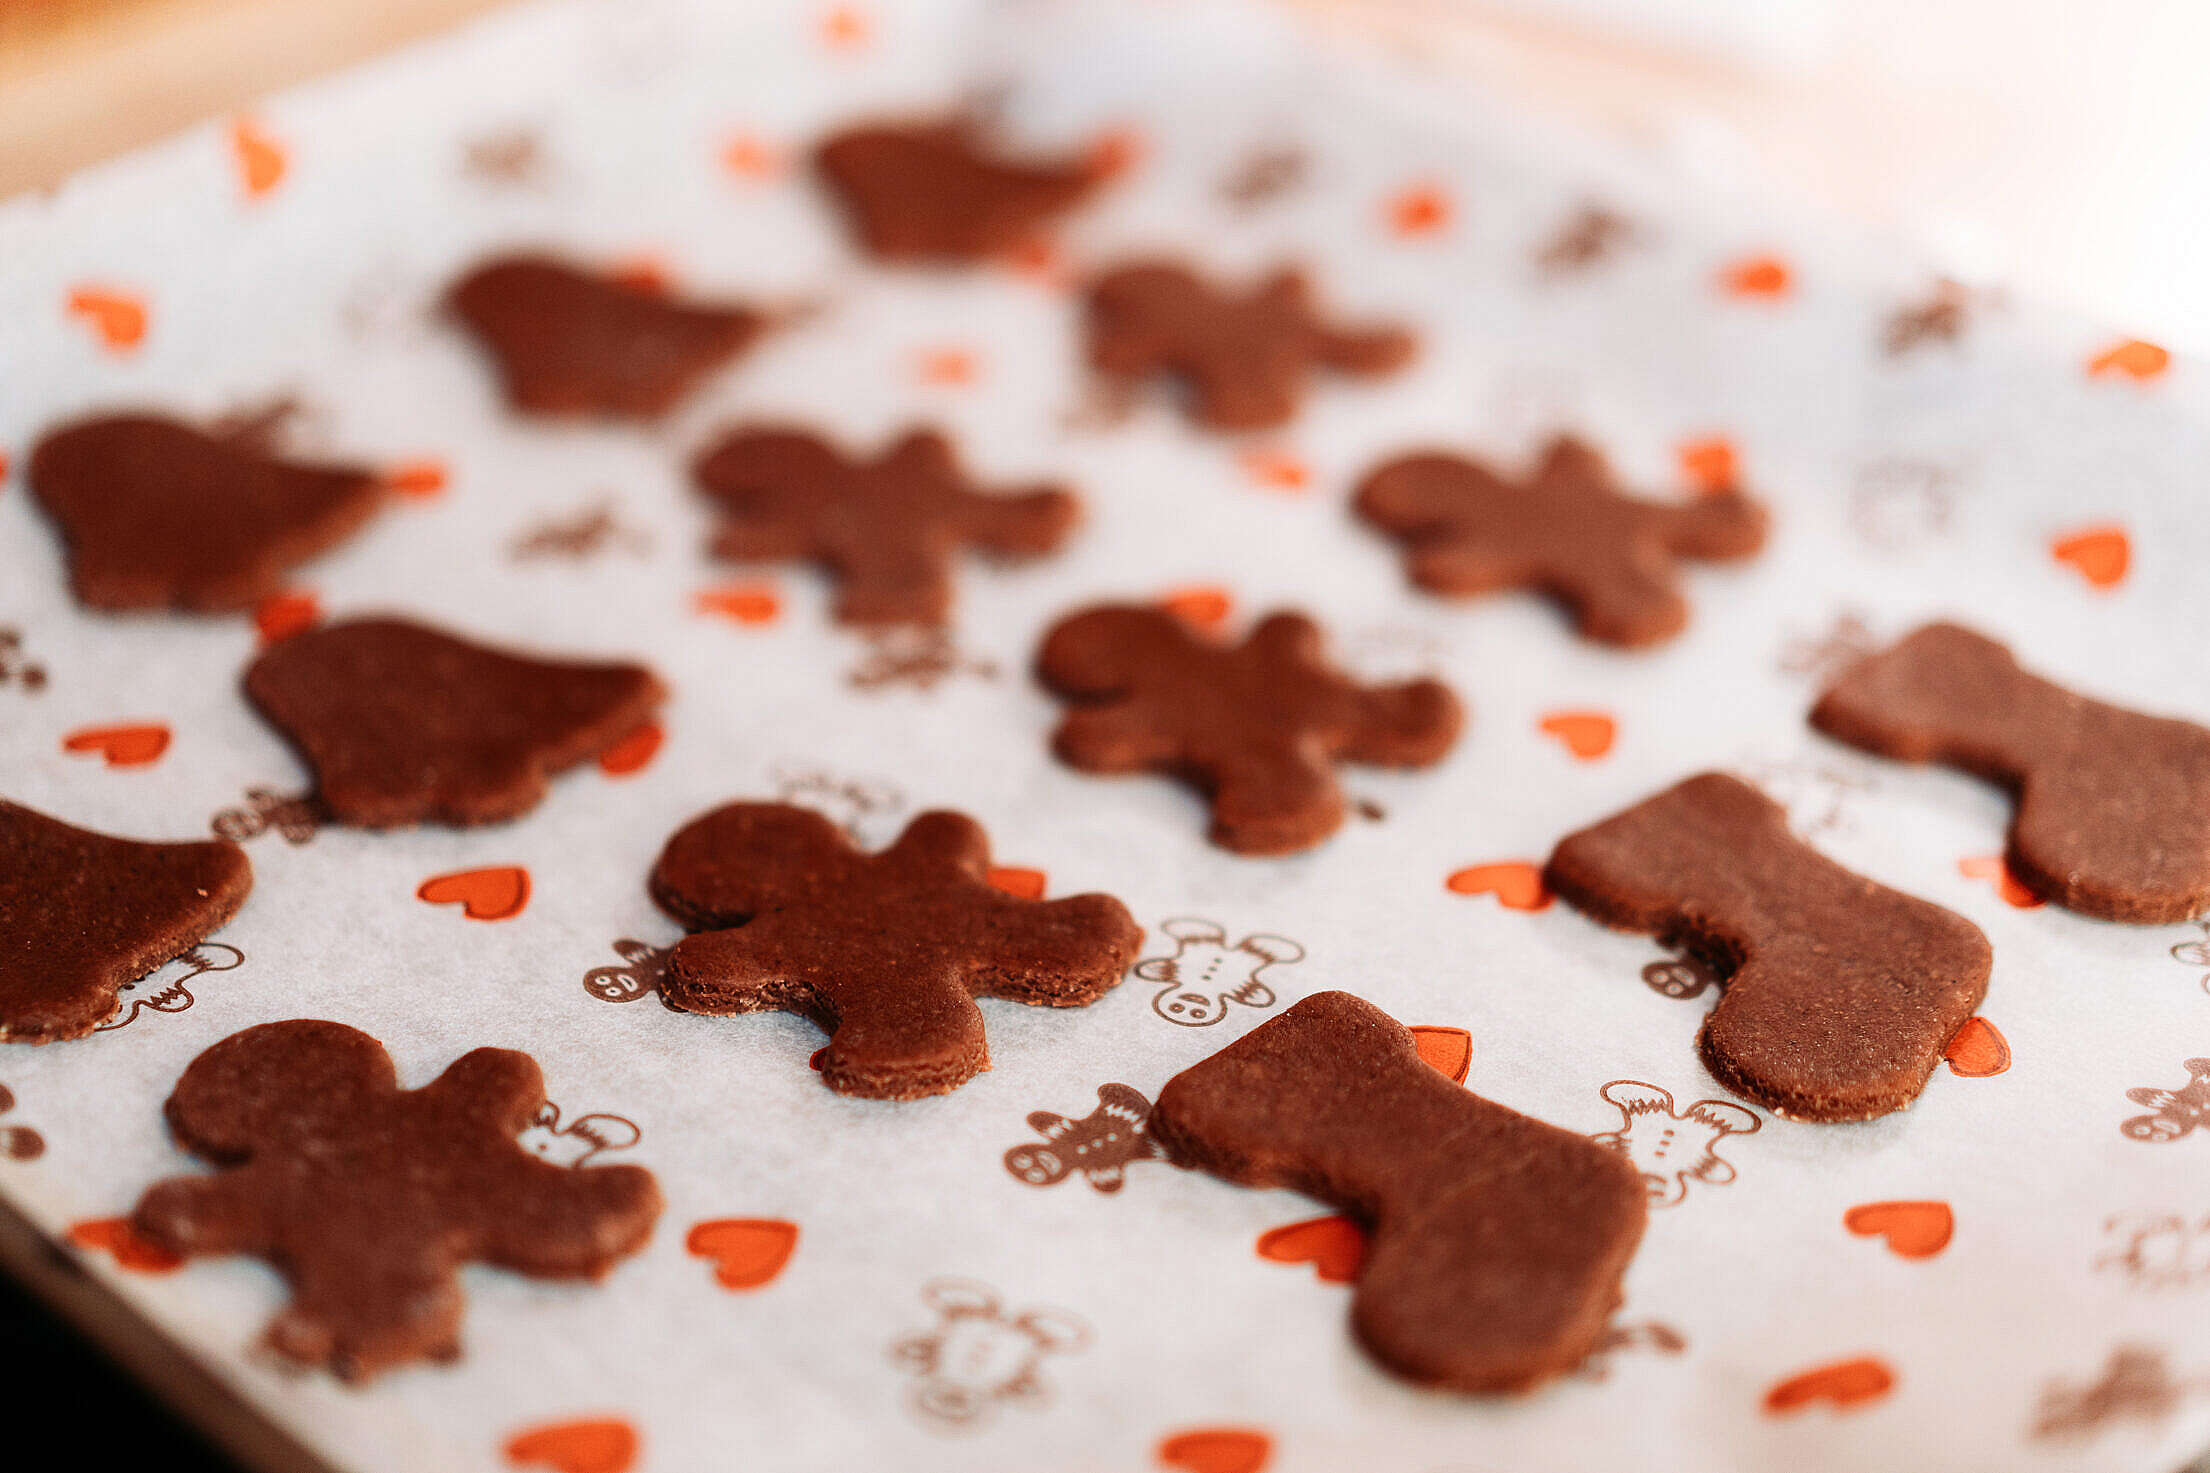 Christmas Gingerbread Cookies on a Tray Free Stock Photo